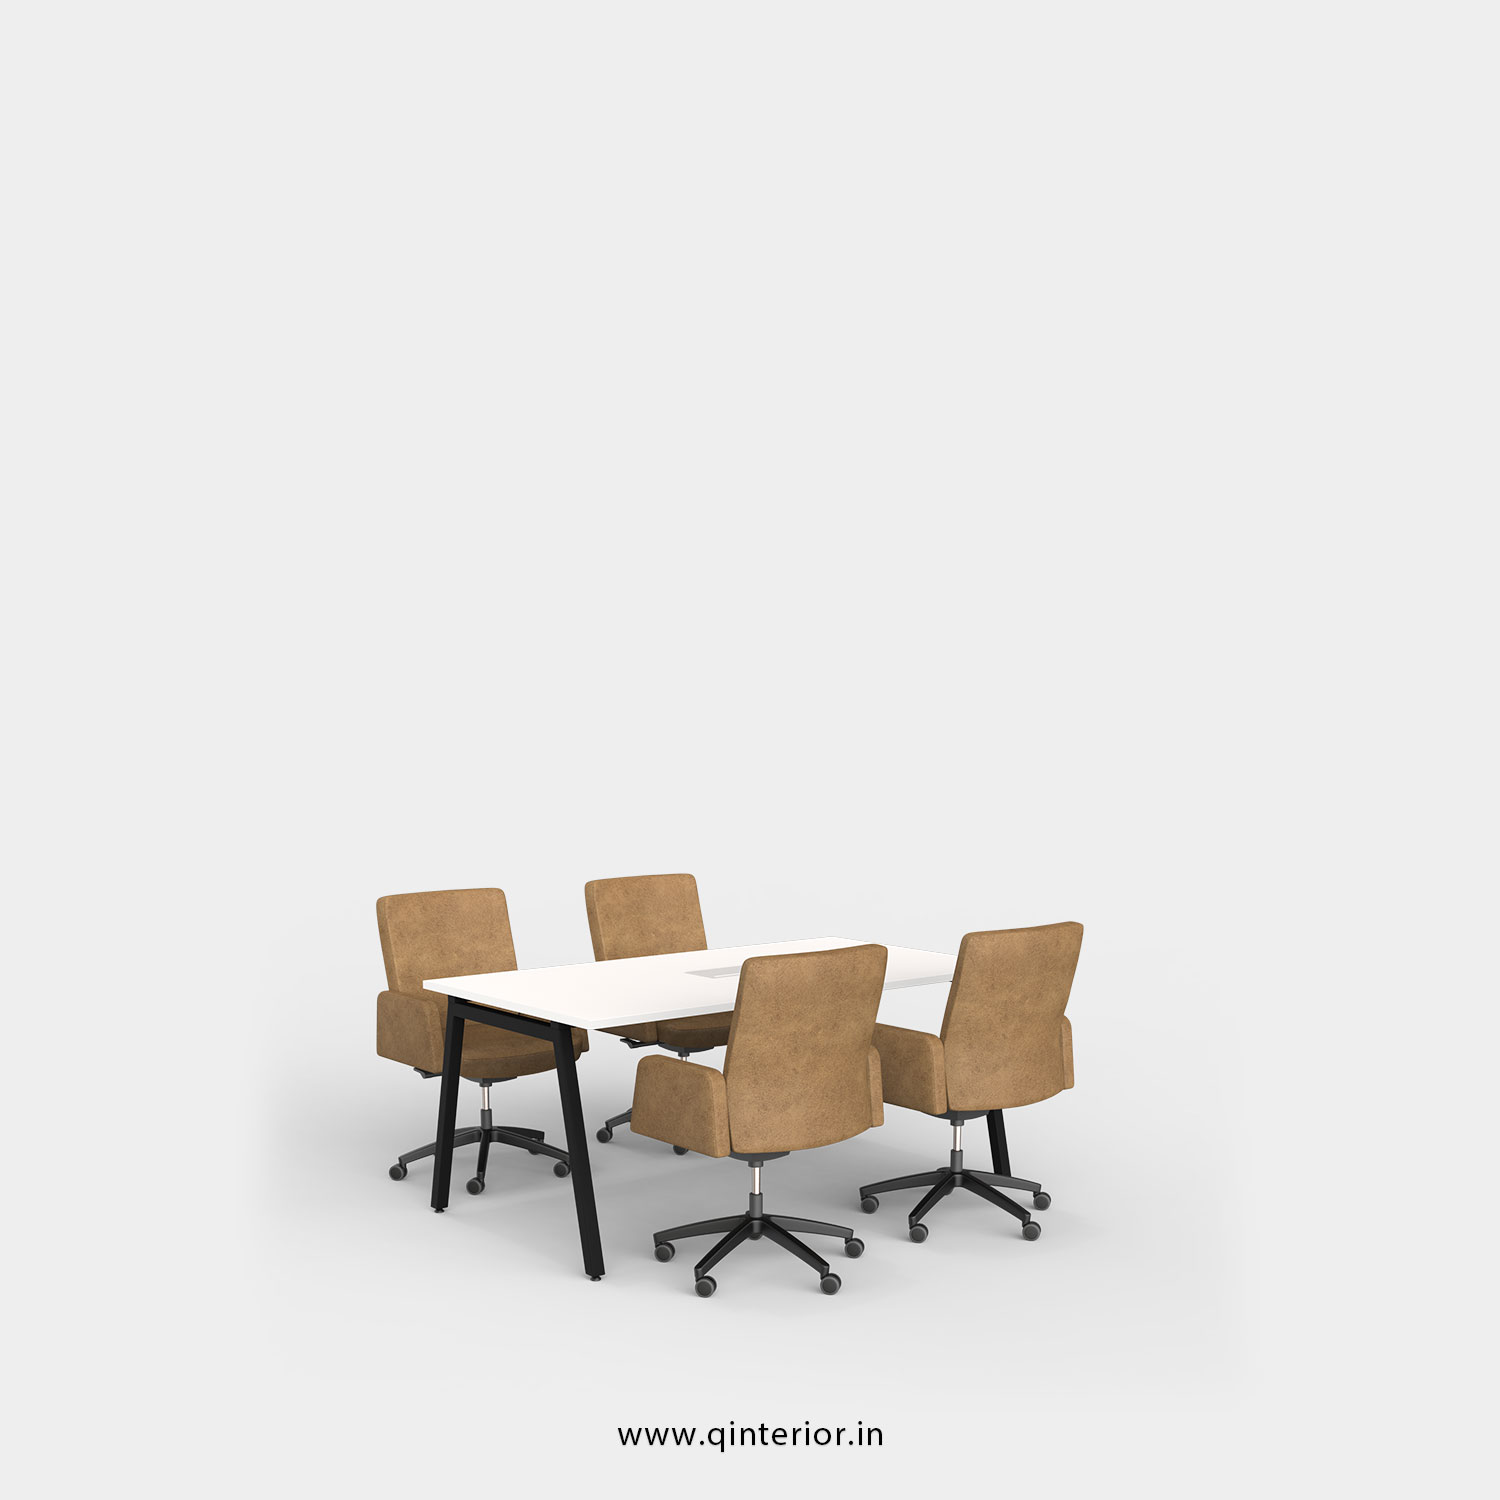 Berg Meeting Table in White Finish - OMT001 C4